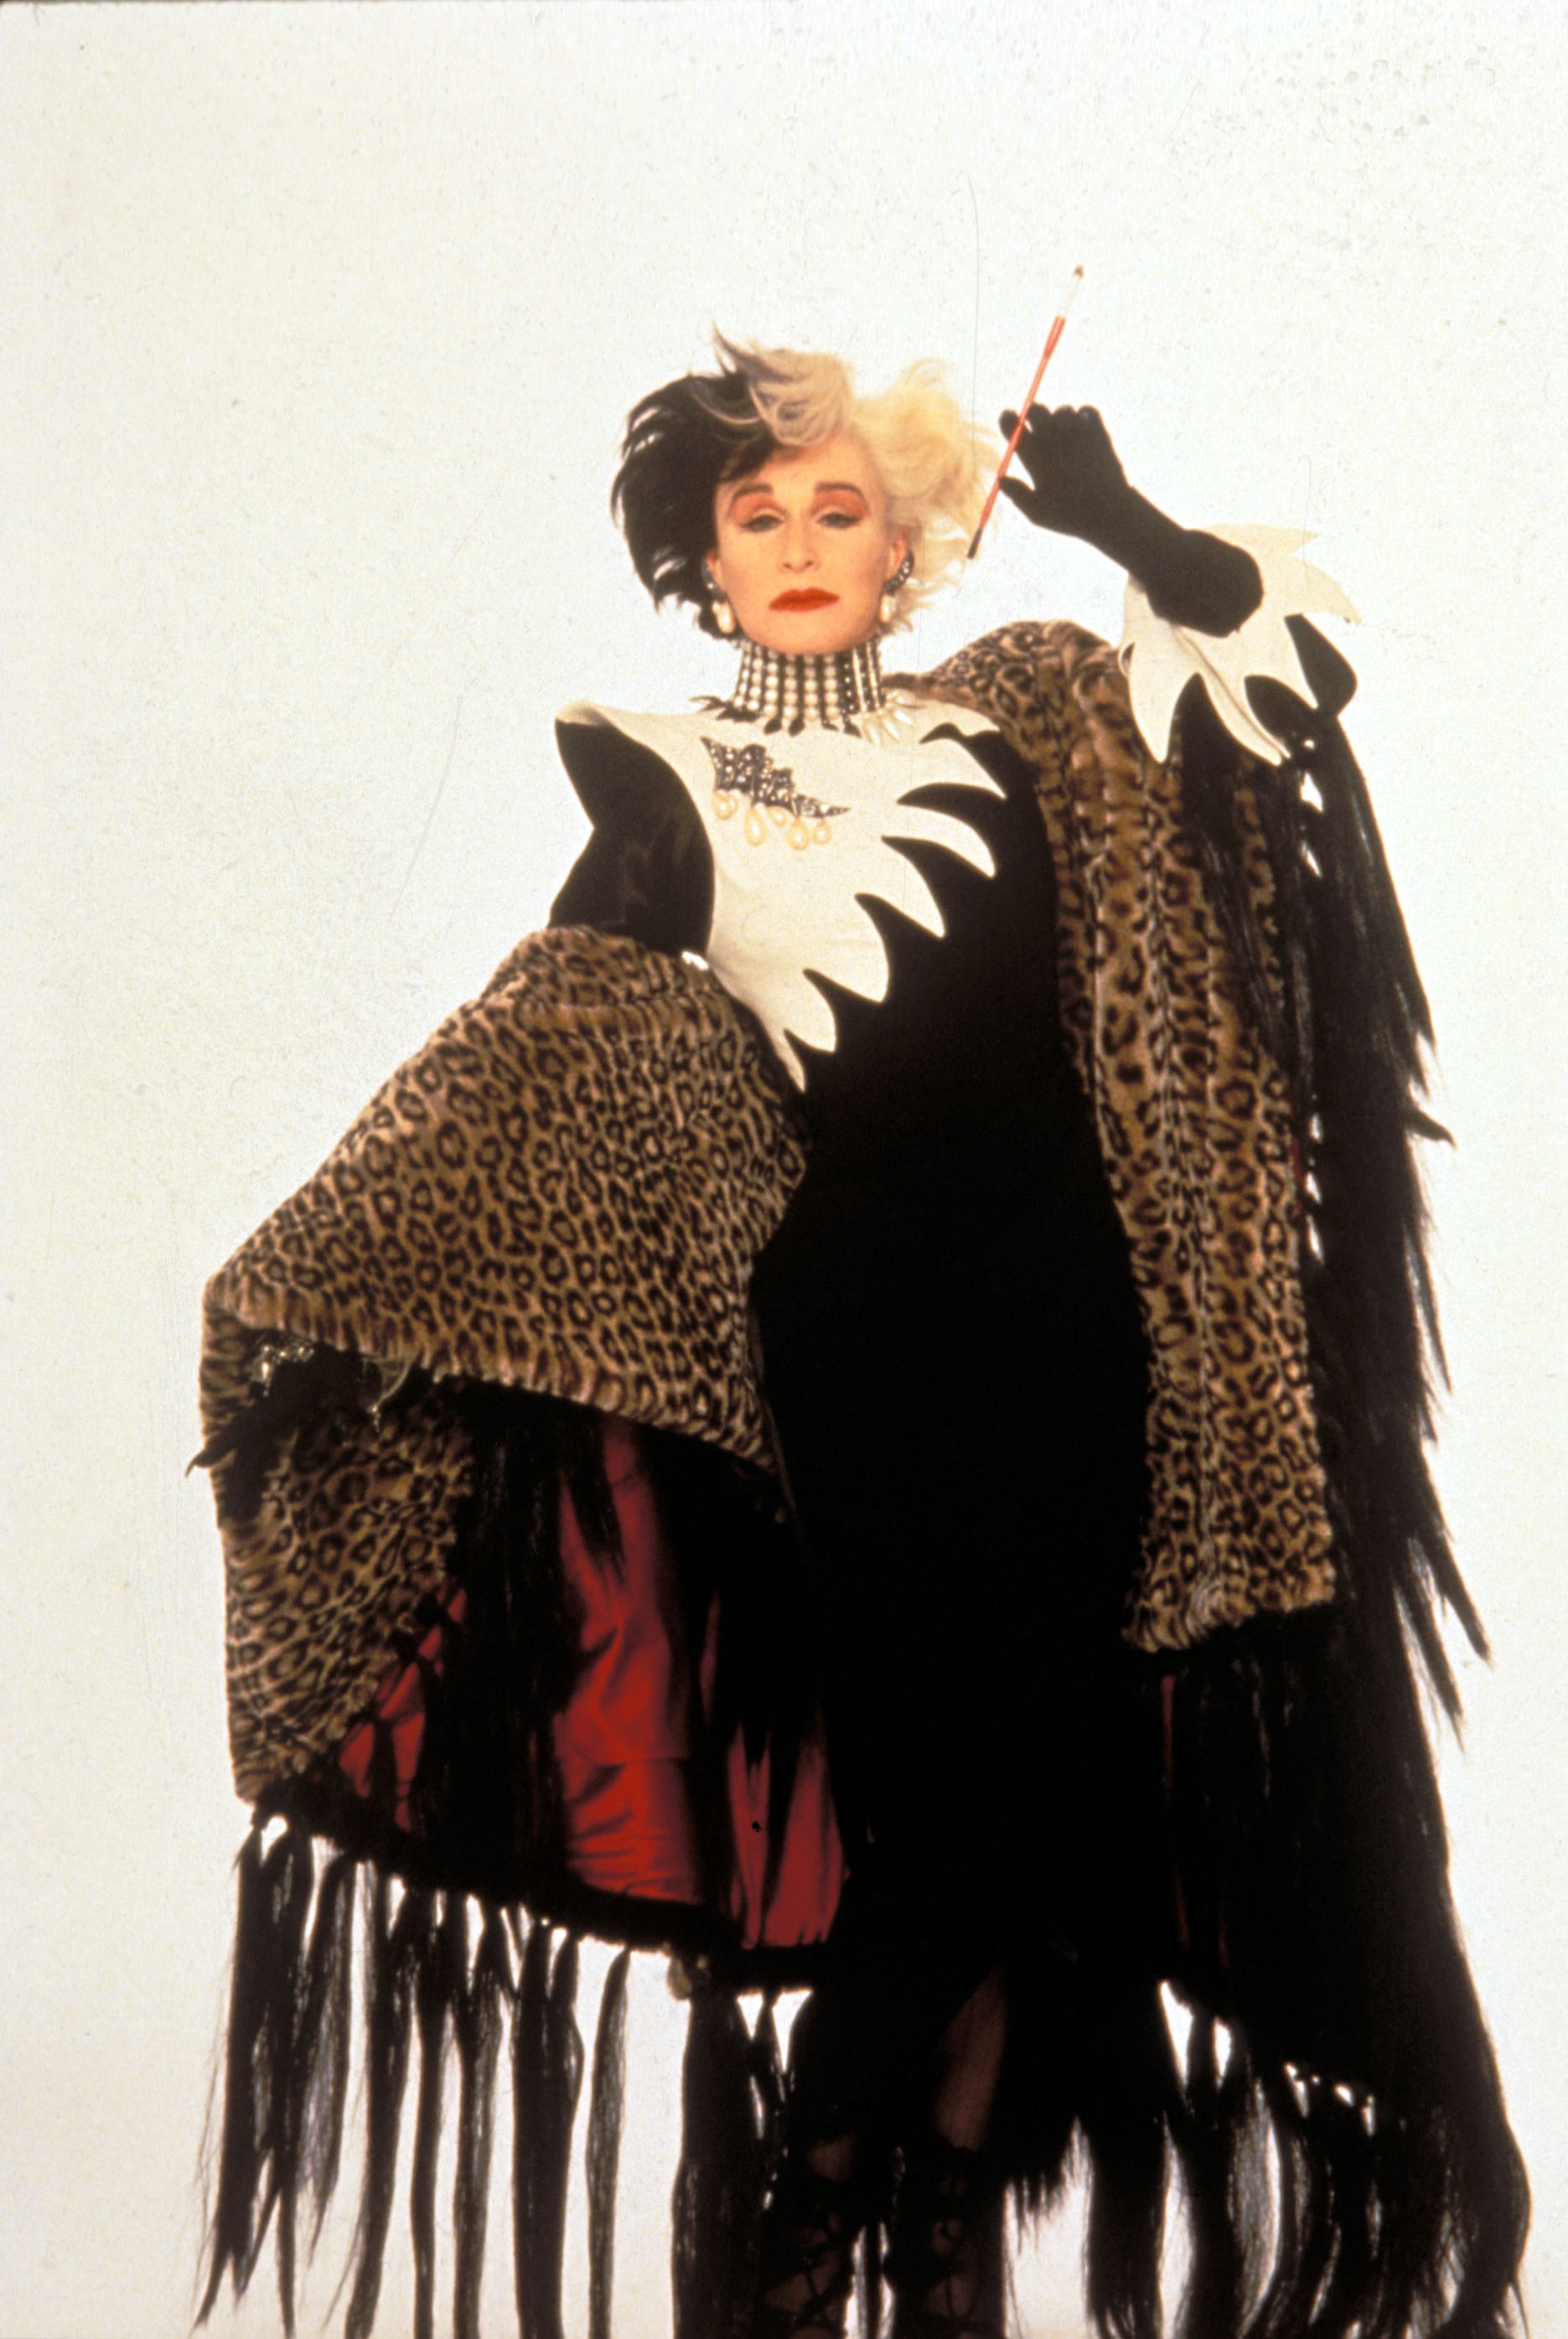 101 Dalmatians - Glenn Close Photo (35236758) - Fanpop